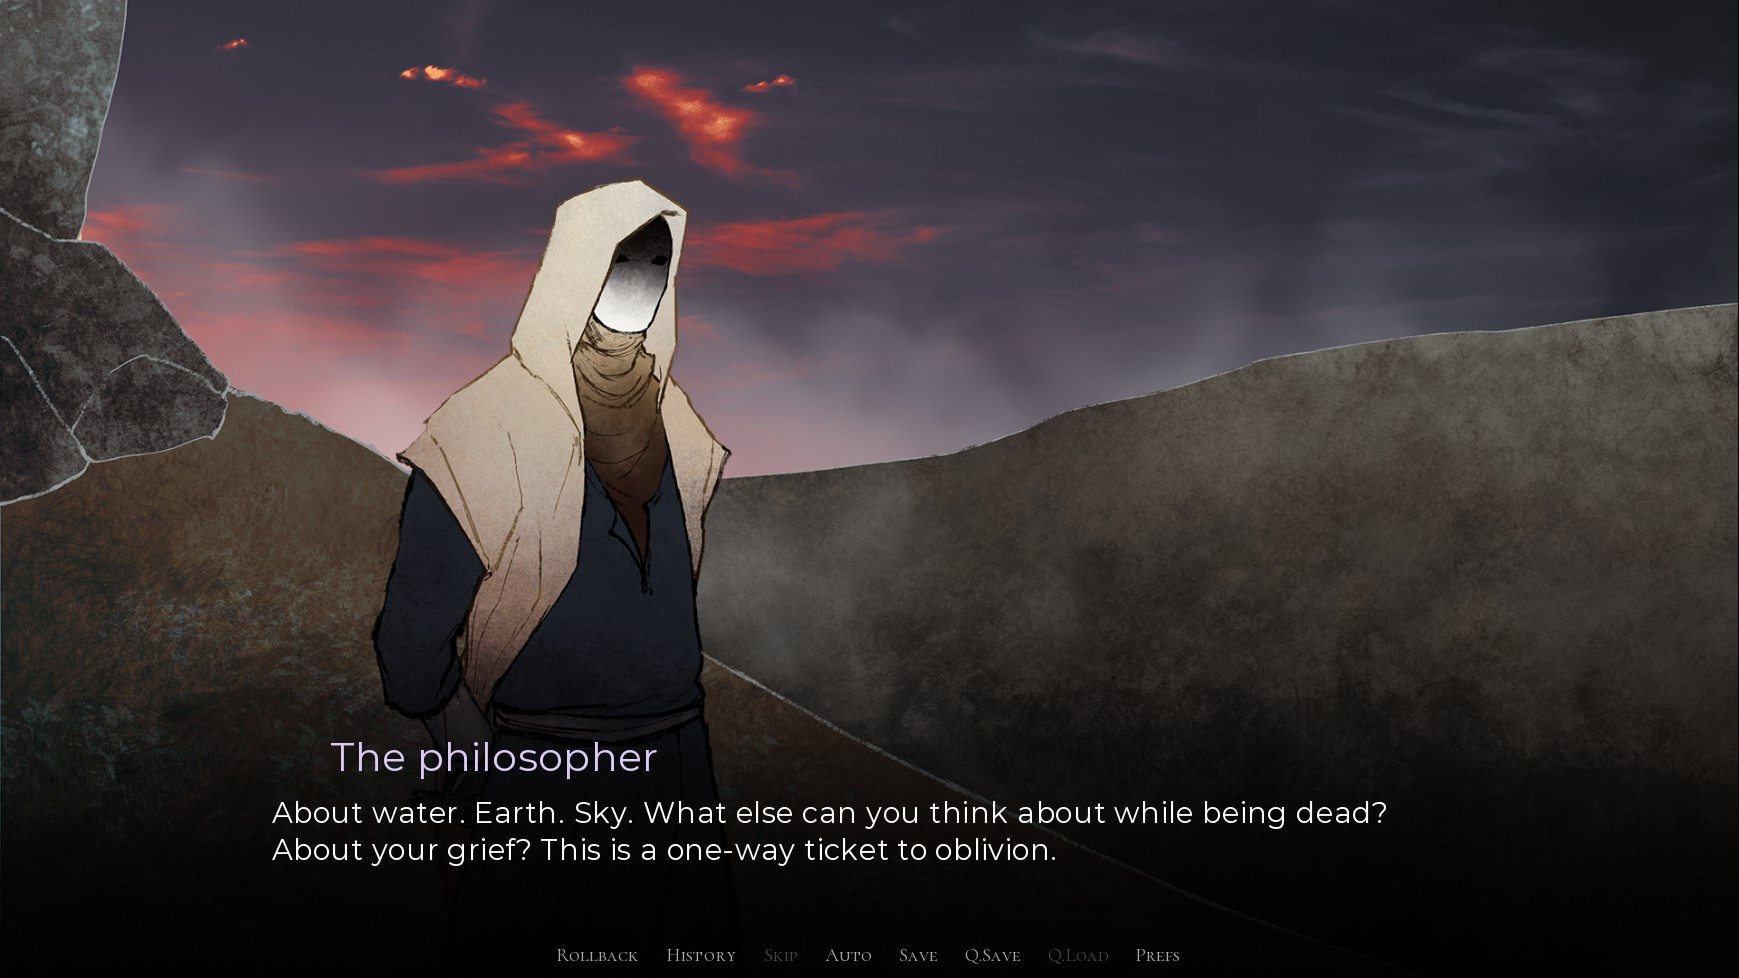 The philosopher character with a covered face says: